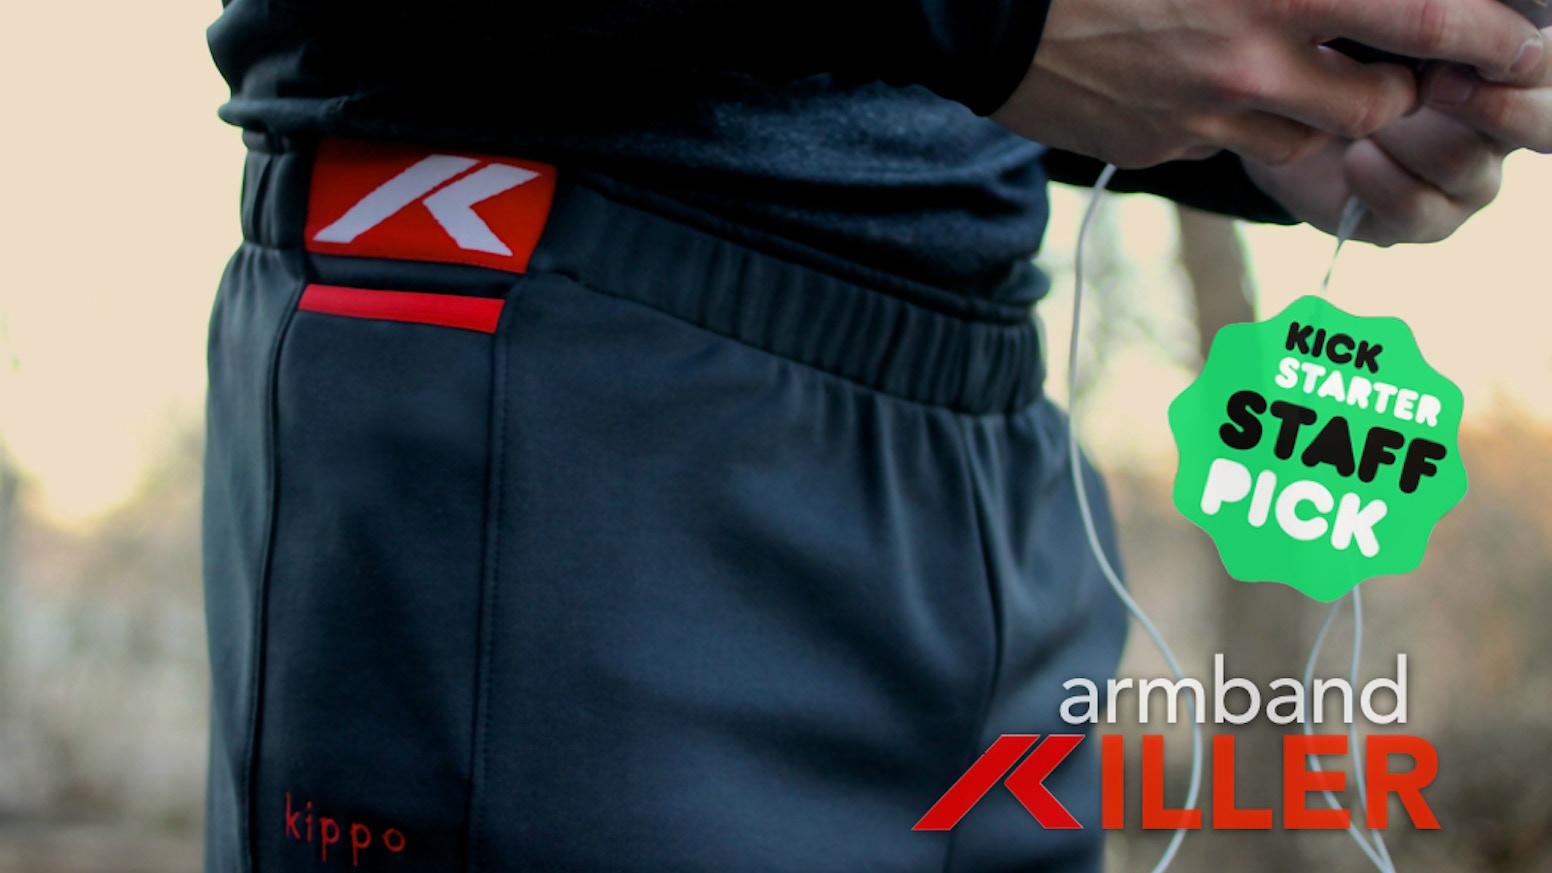 Kippo shorts secure your phone and make it easy to grab.